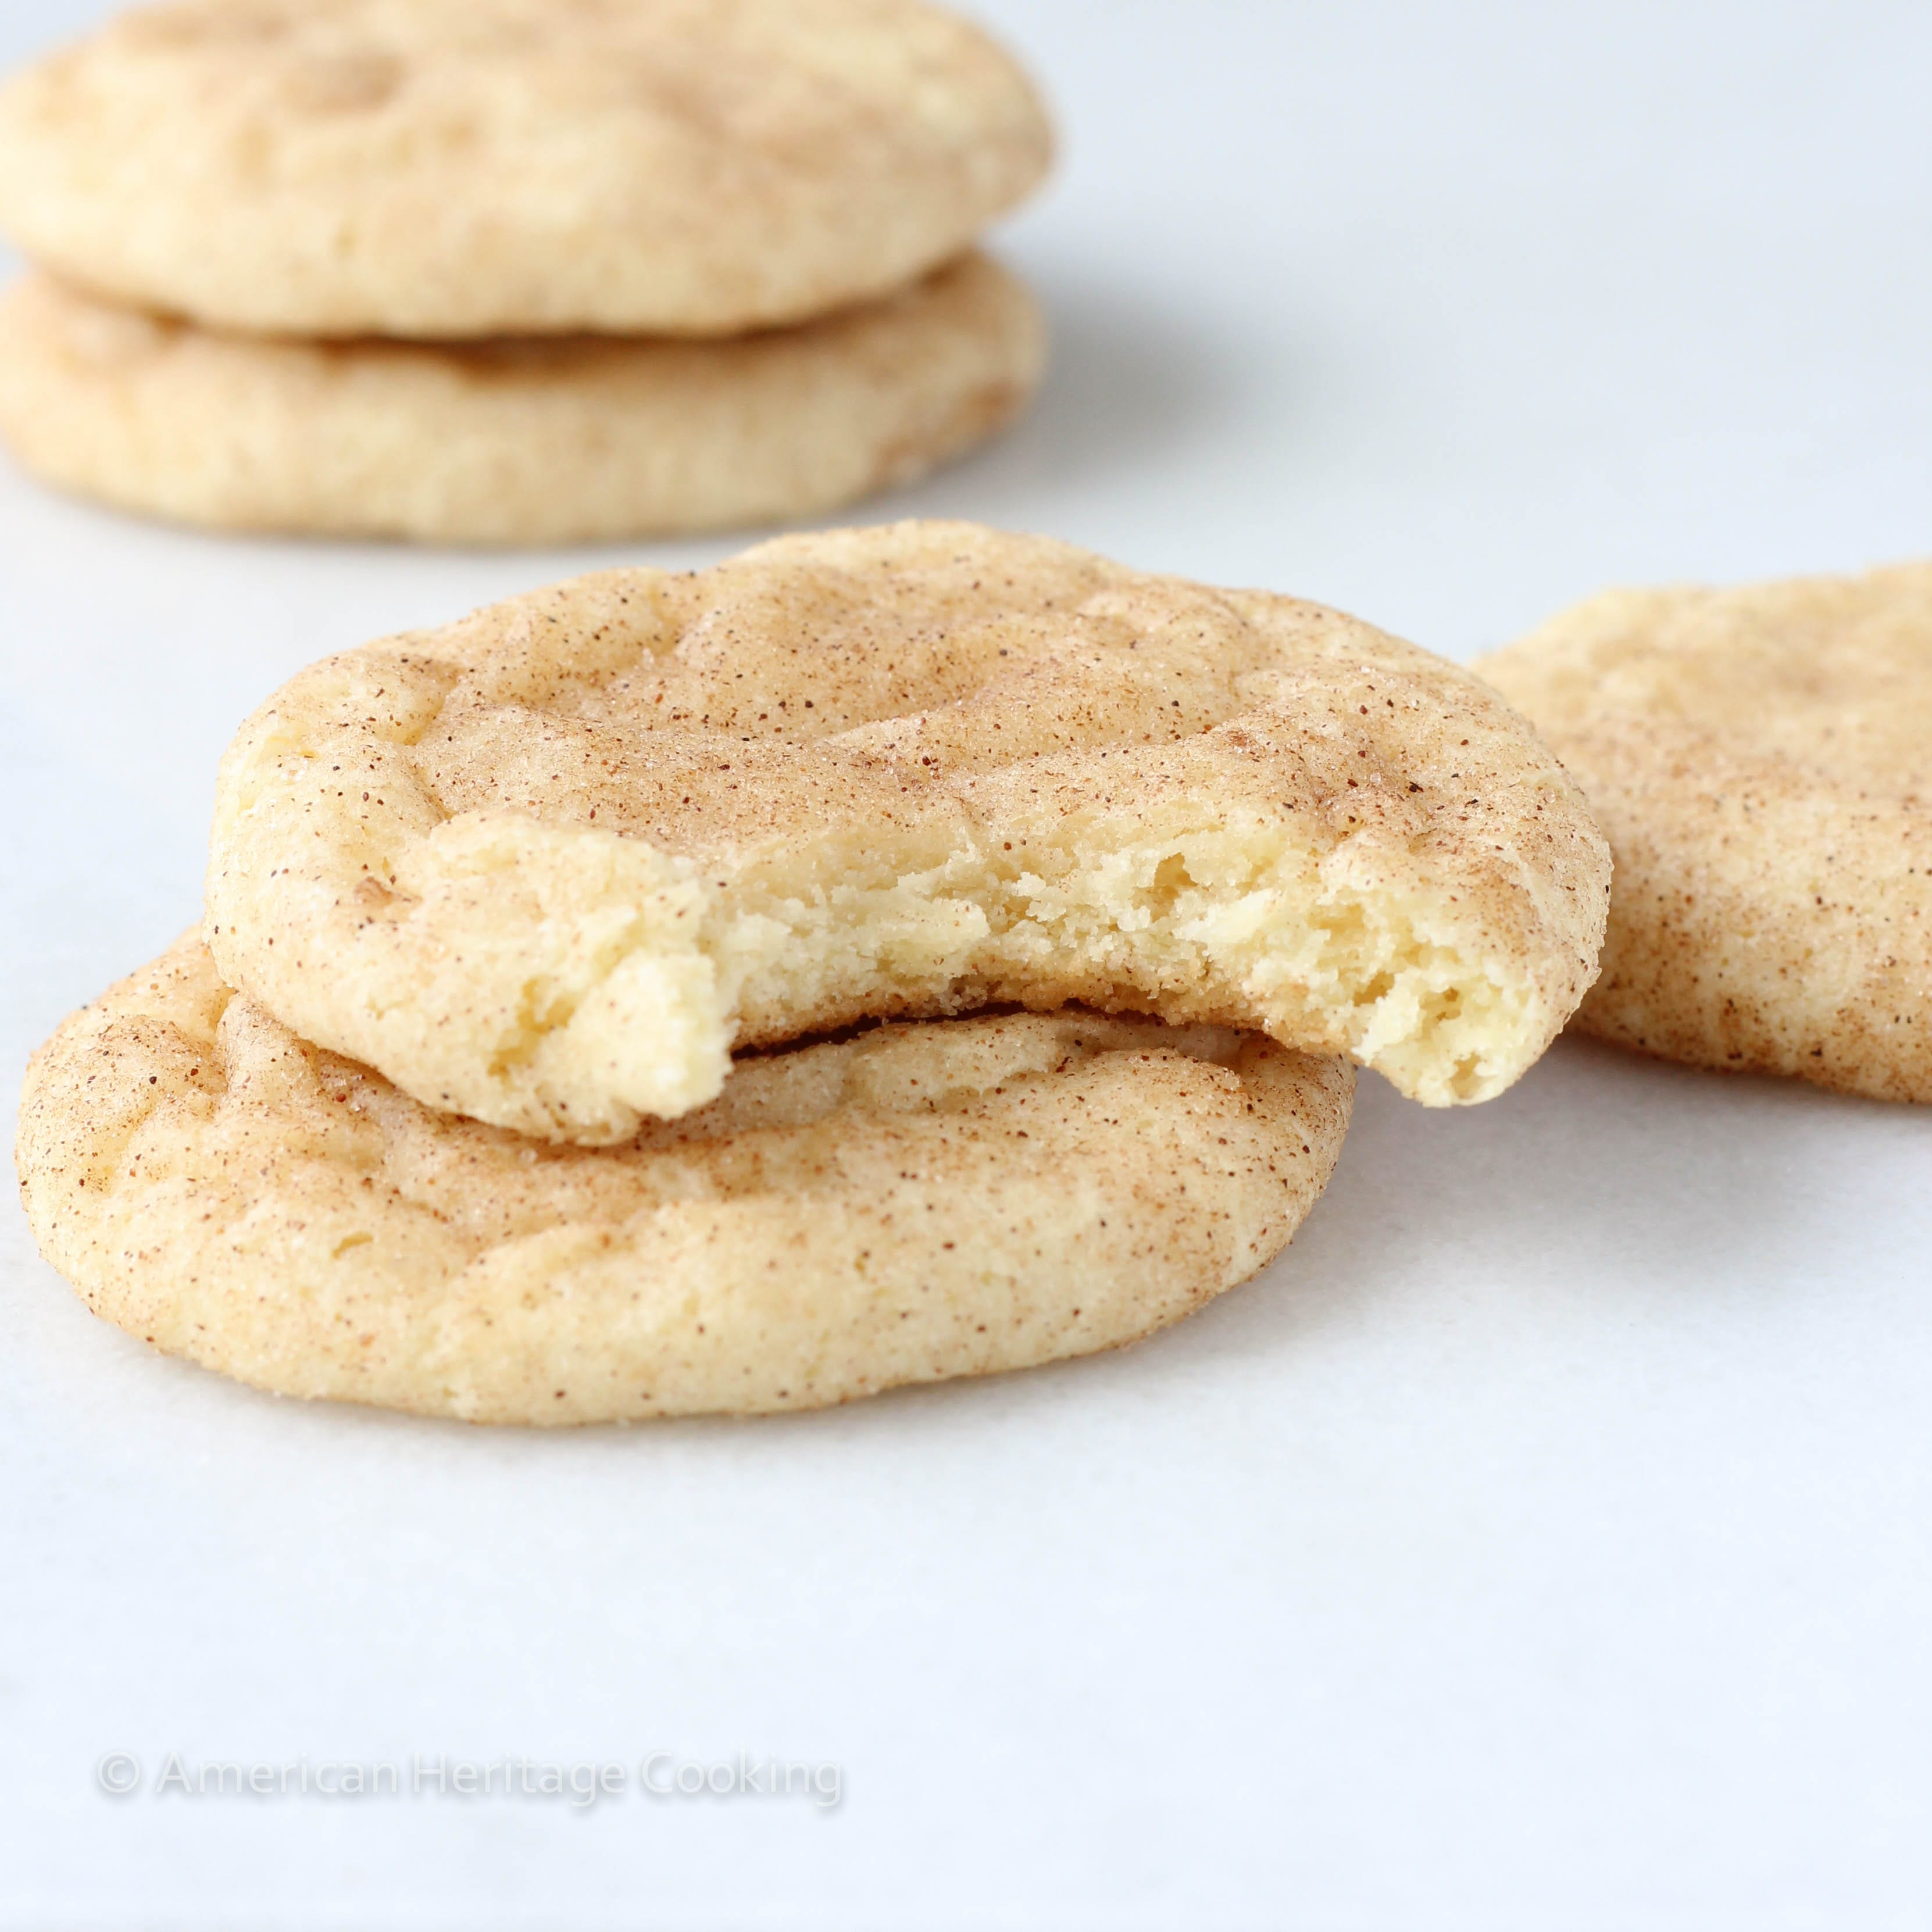 Snickerdoodles originated in New England and differentiate themselves ...